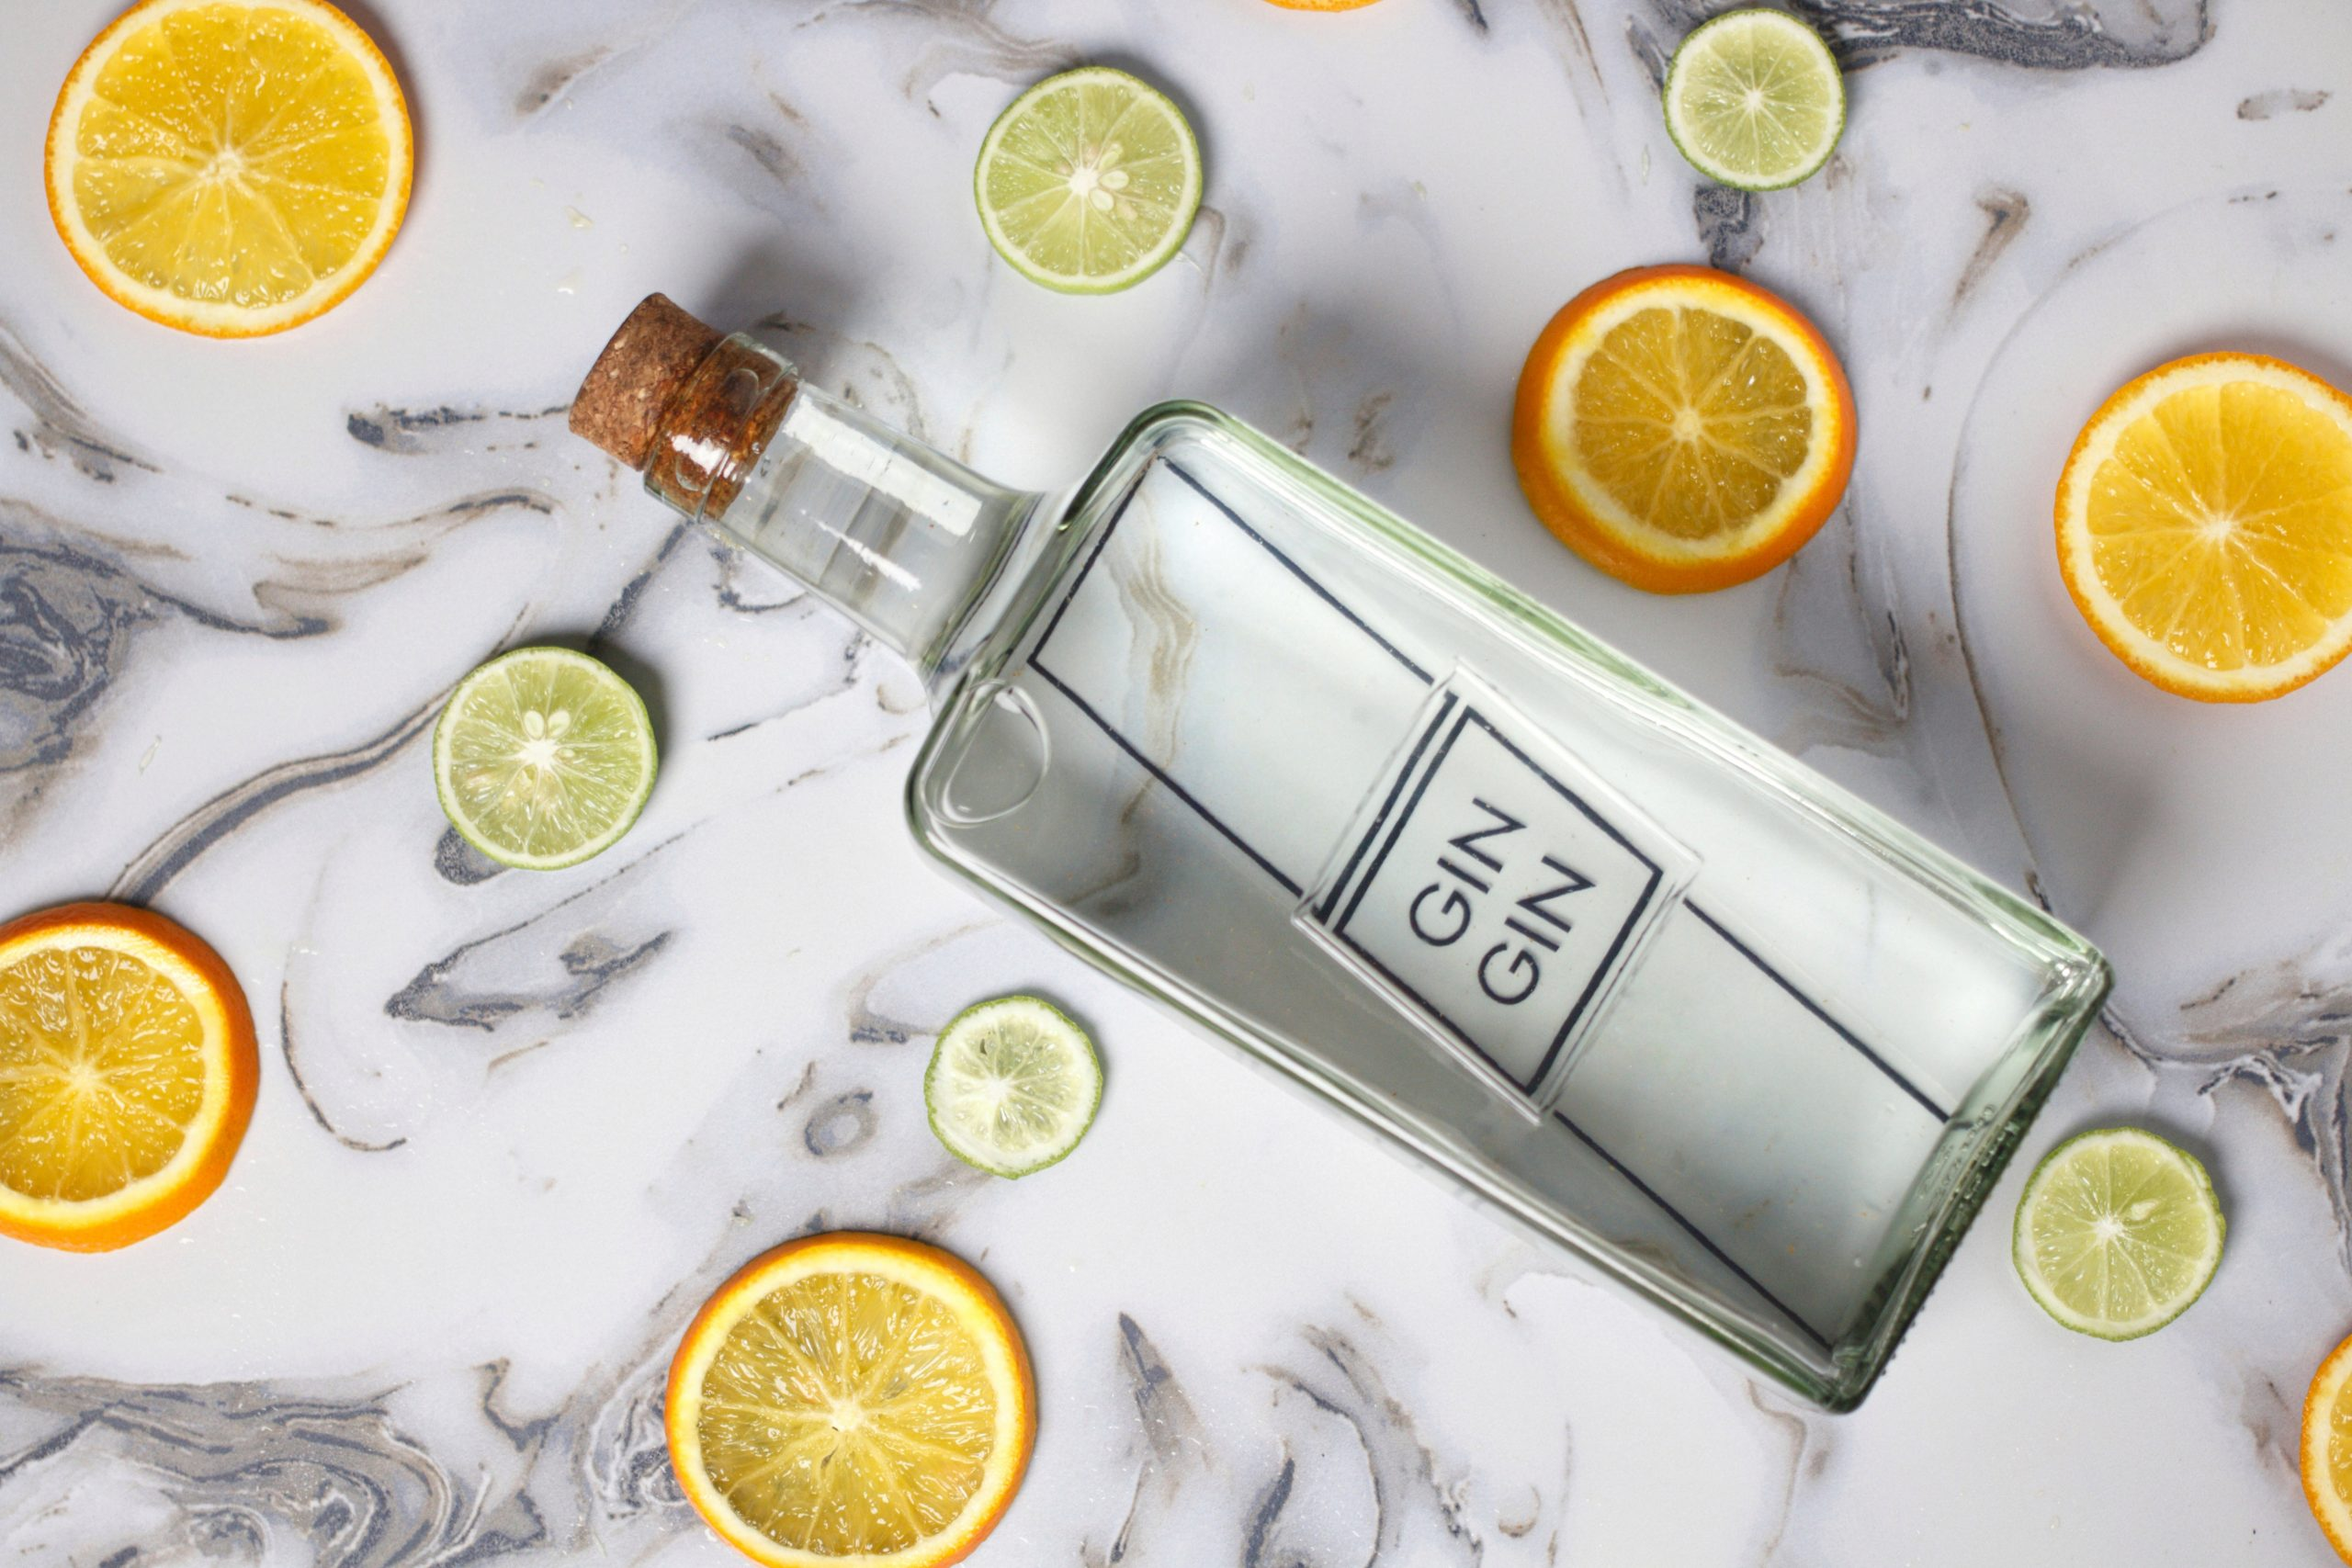 GinGin is India's first homegrown hemp gin